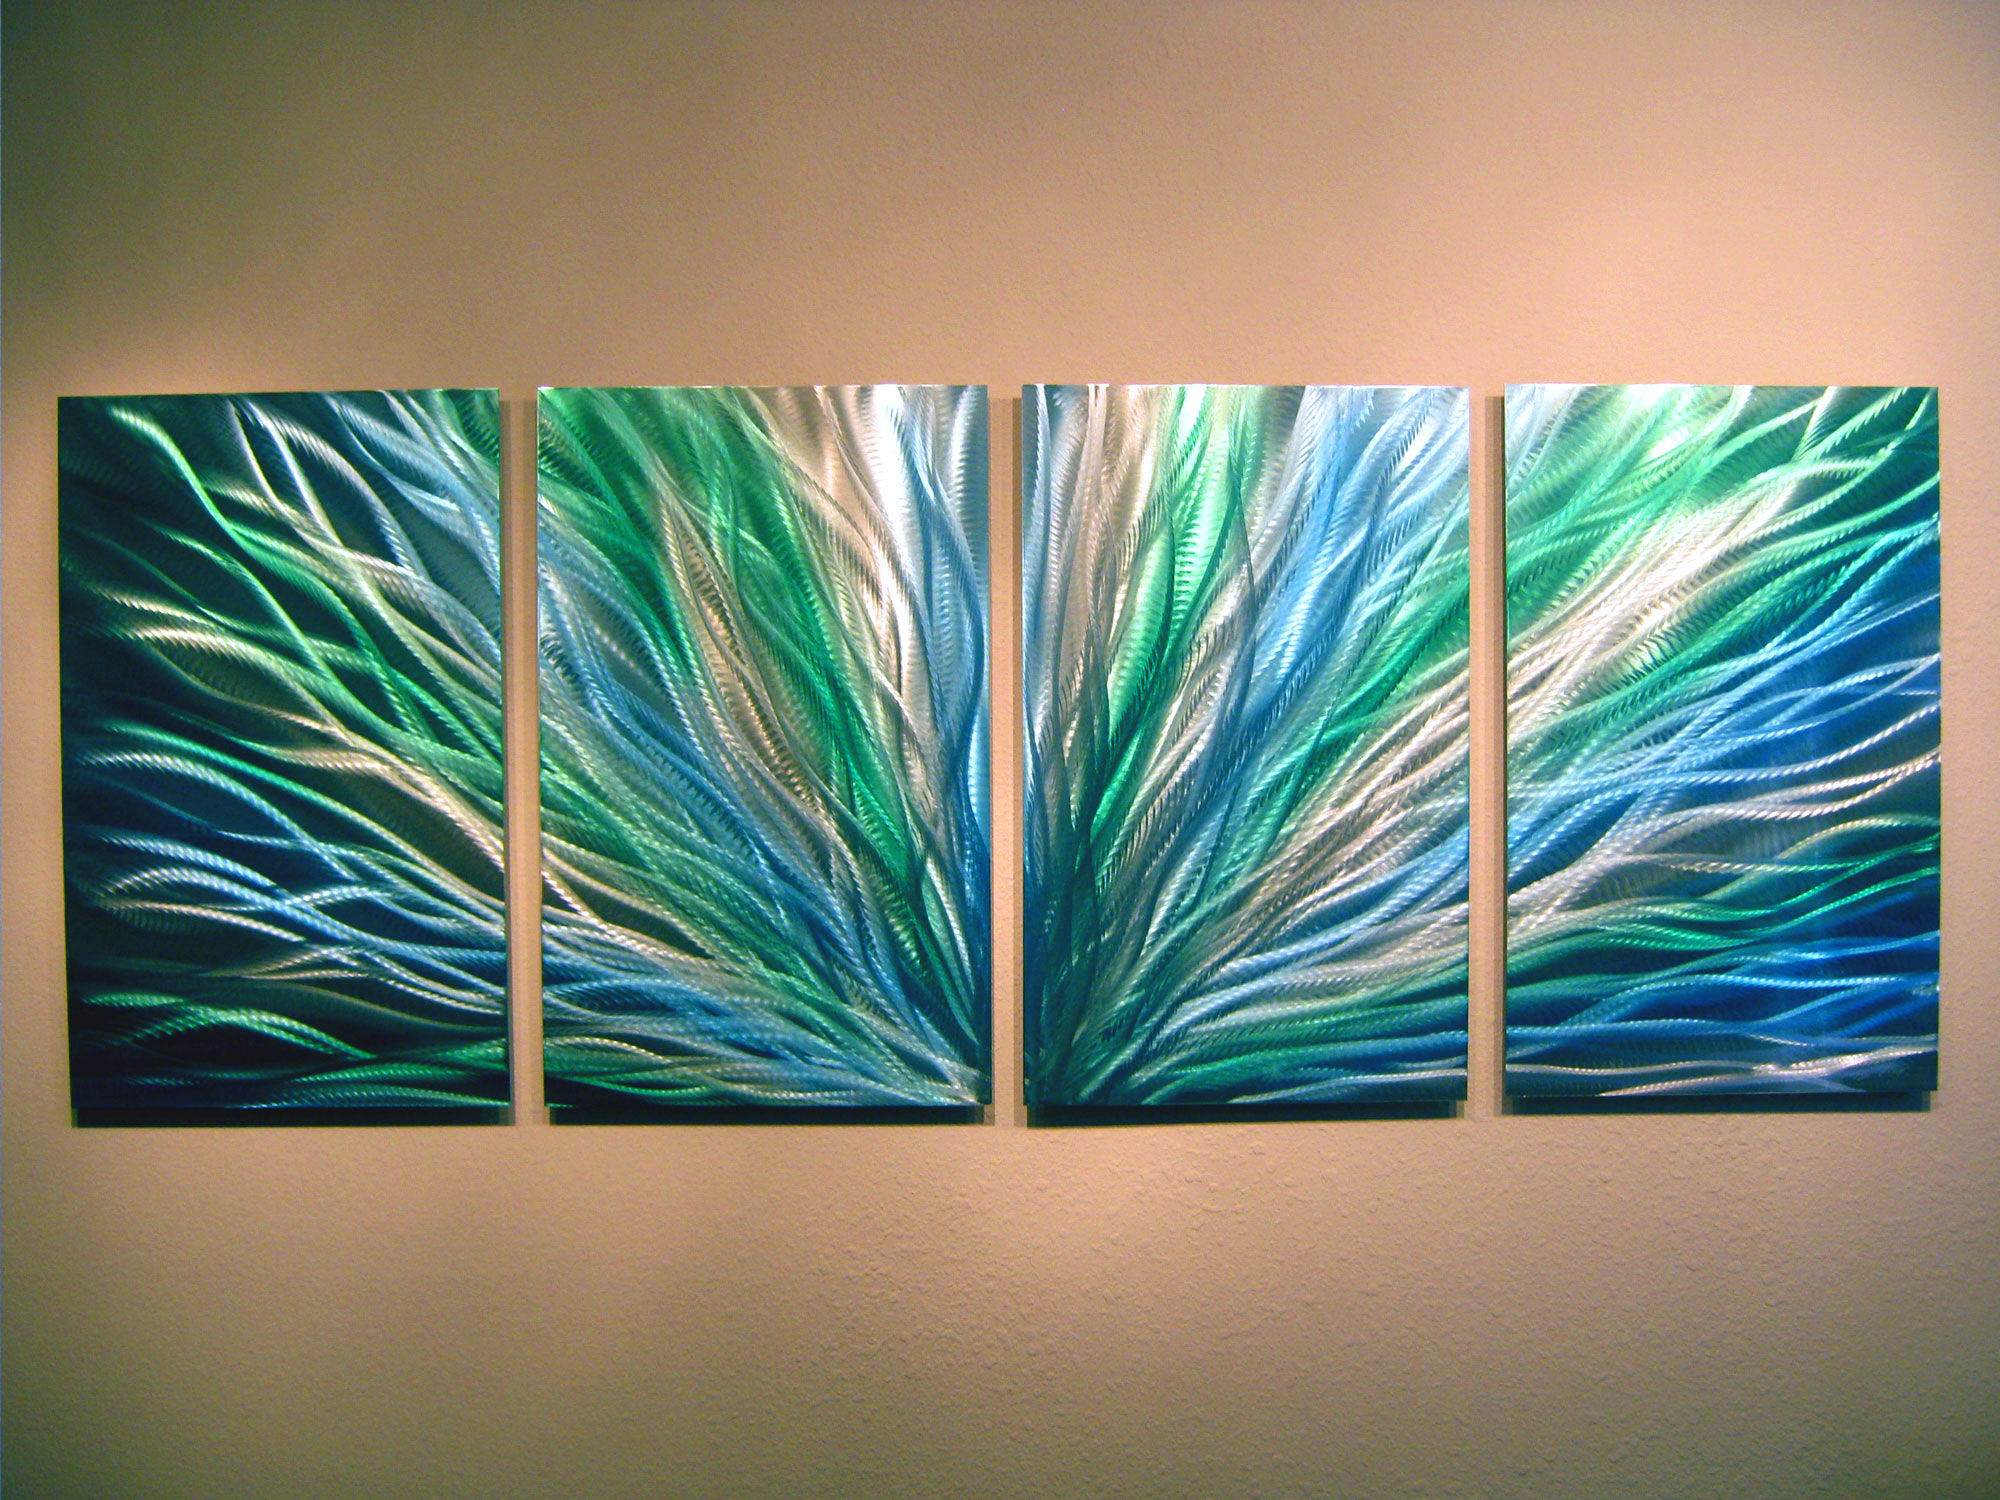 ... Radiance Blue Green  Abstract Metal Wall Art Contemporary Modern Decor    Thumbnail 2